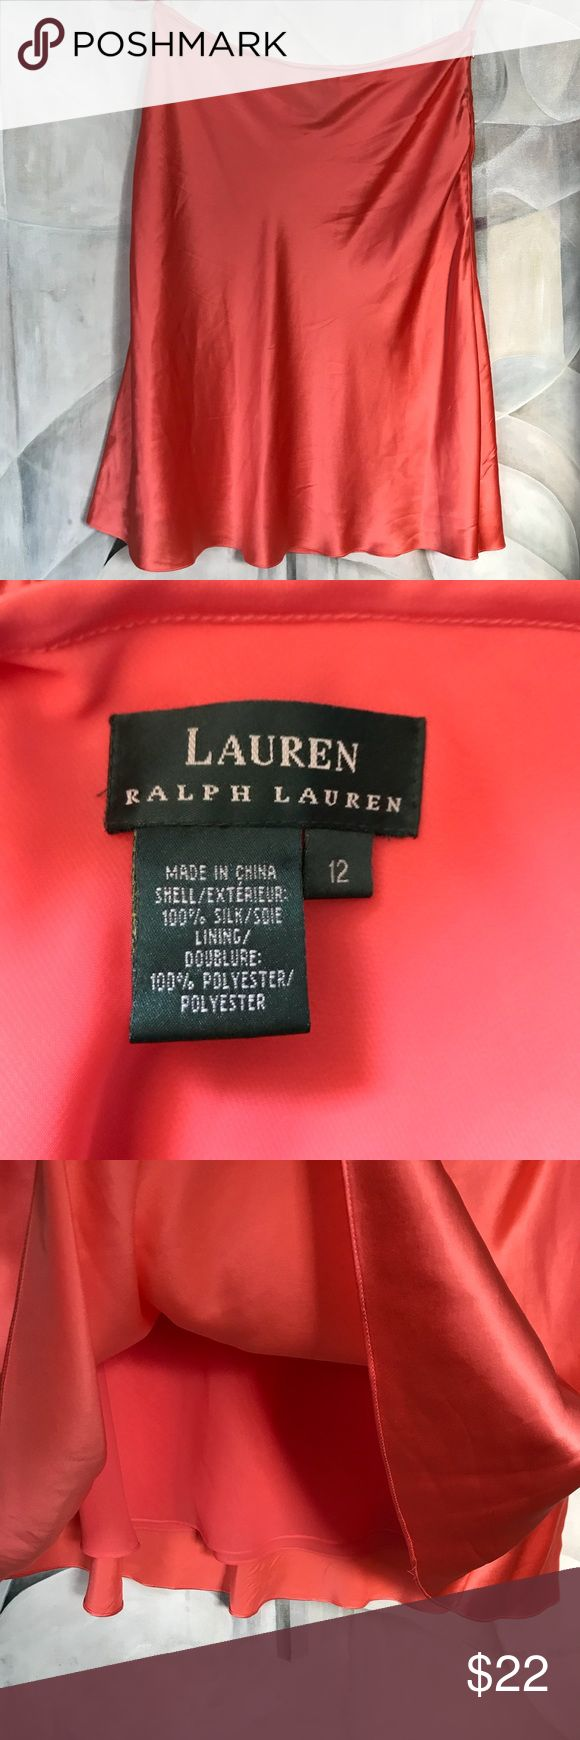 "Ralph Lauren Silk Coral Skirt EUC! Lined Shimmery Side zip Size 12 16"" across waist and 24"" length * see photos for minor pinholes Ralph Lauren Skirts Midi"